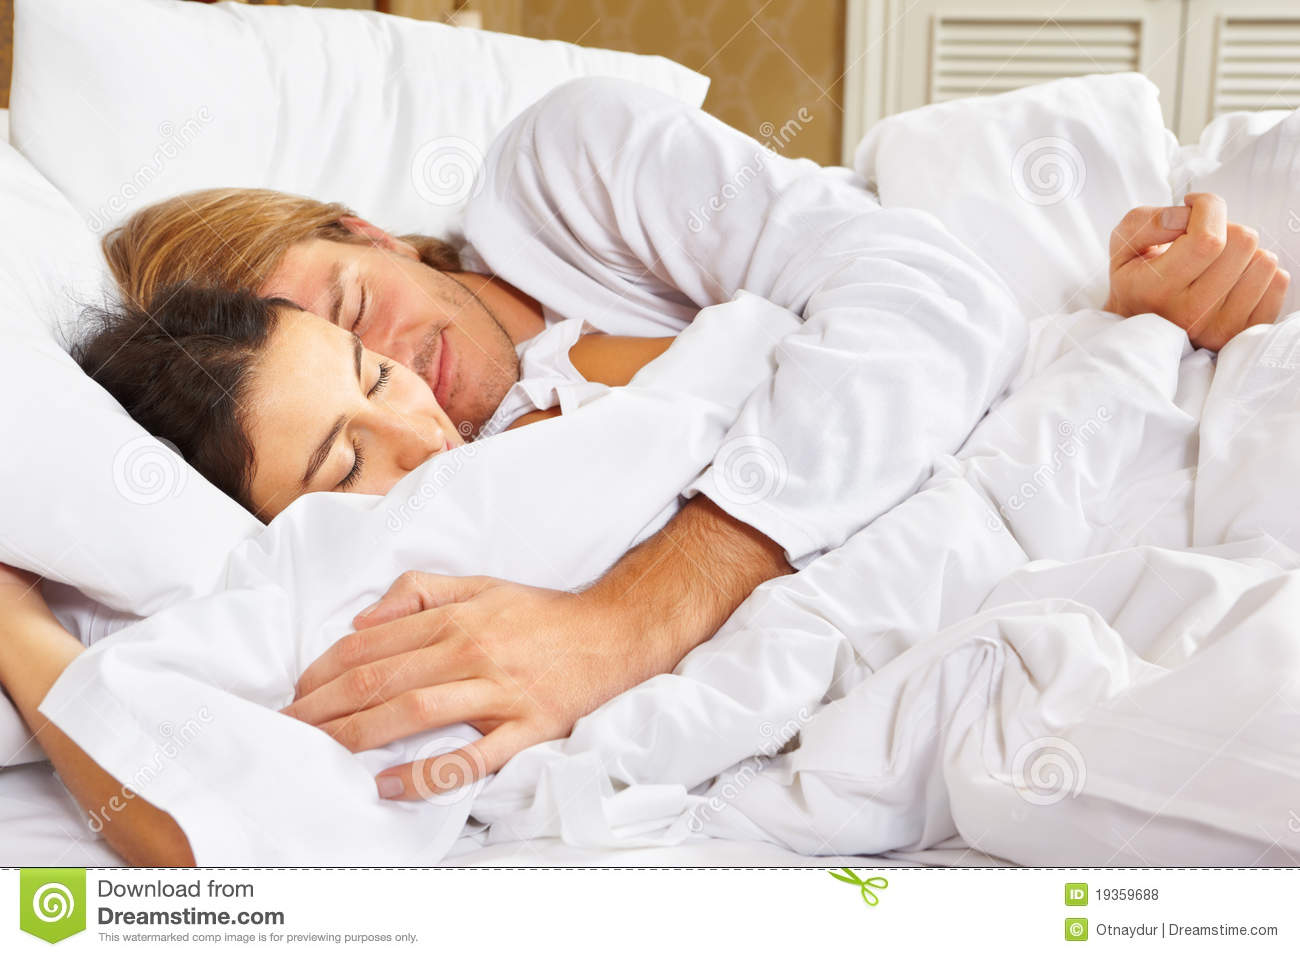 Couple showing romance on bed Royalty Free Stock Photos. Couple Showing Romance On Bed Stock Photography   Image  19360302